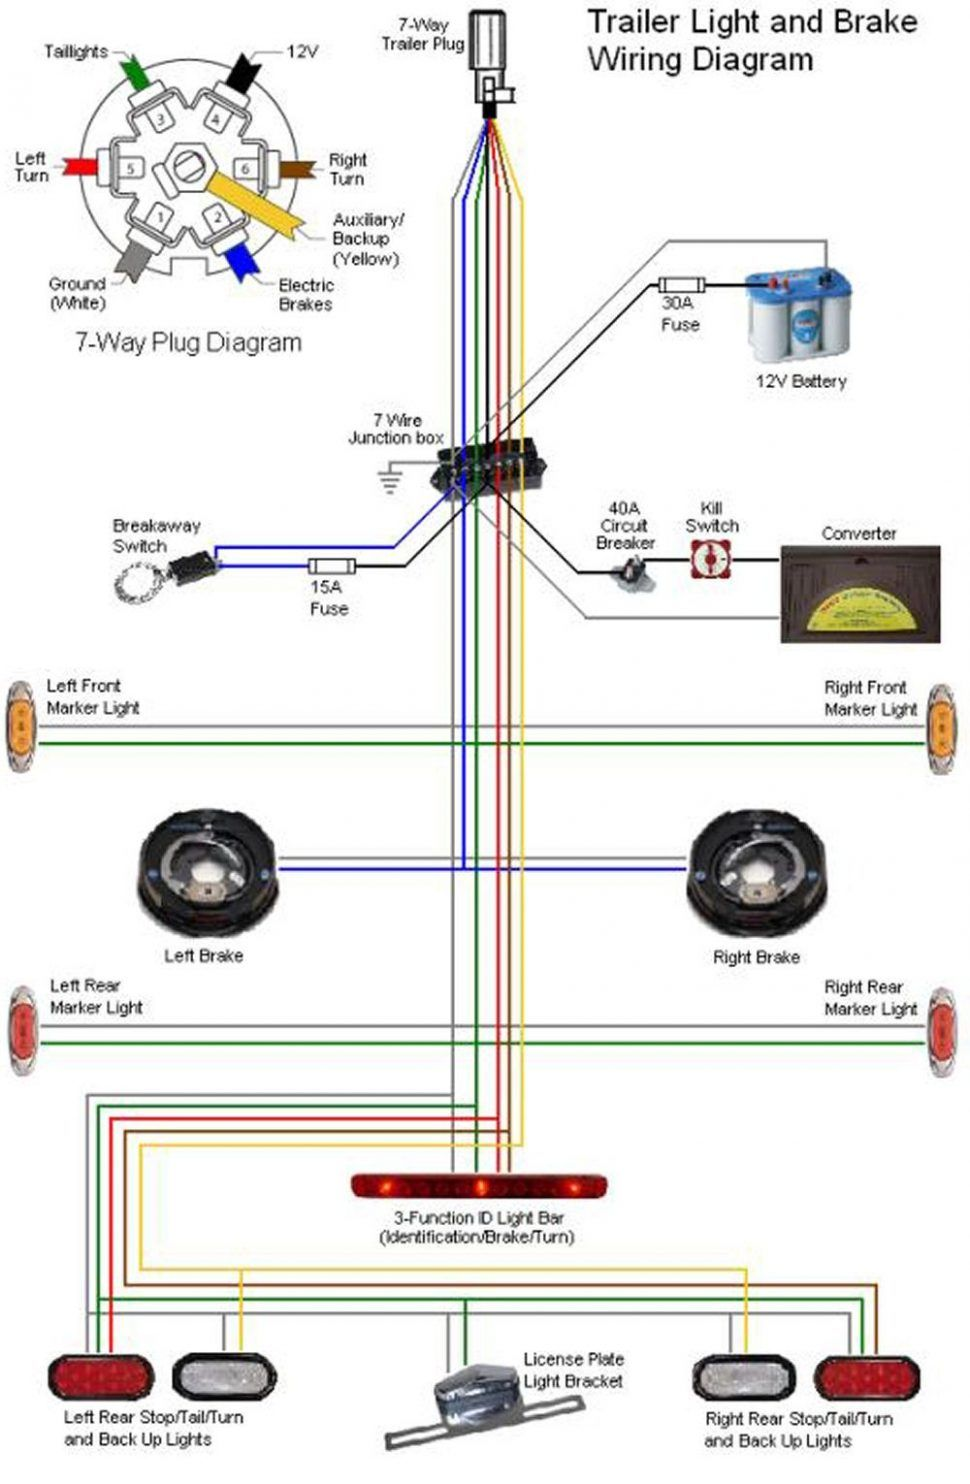 hight resolution of seven pin trailer wiring diagram wiring diagrams gallery trailer wiring 12v batteries in series also utility trailer lights wiring